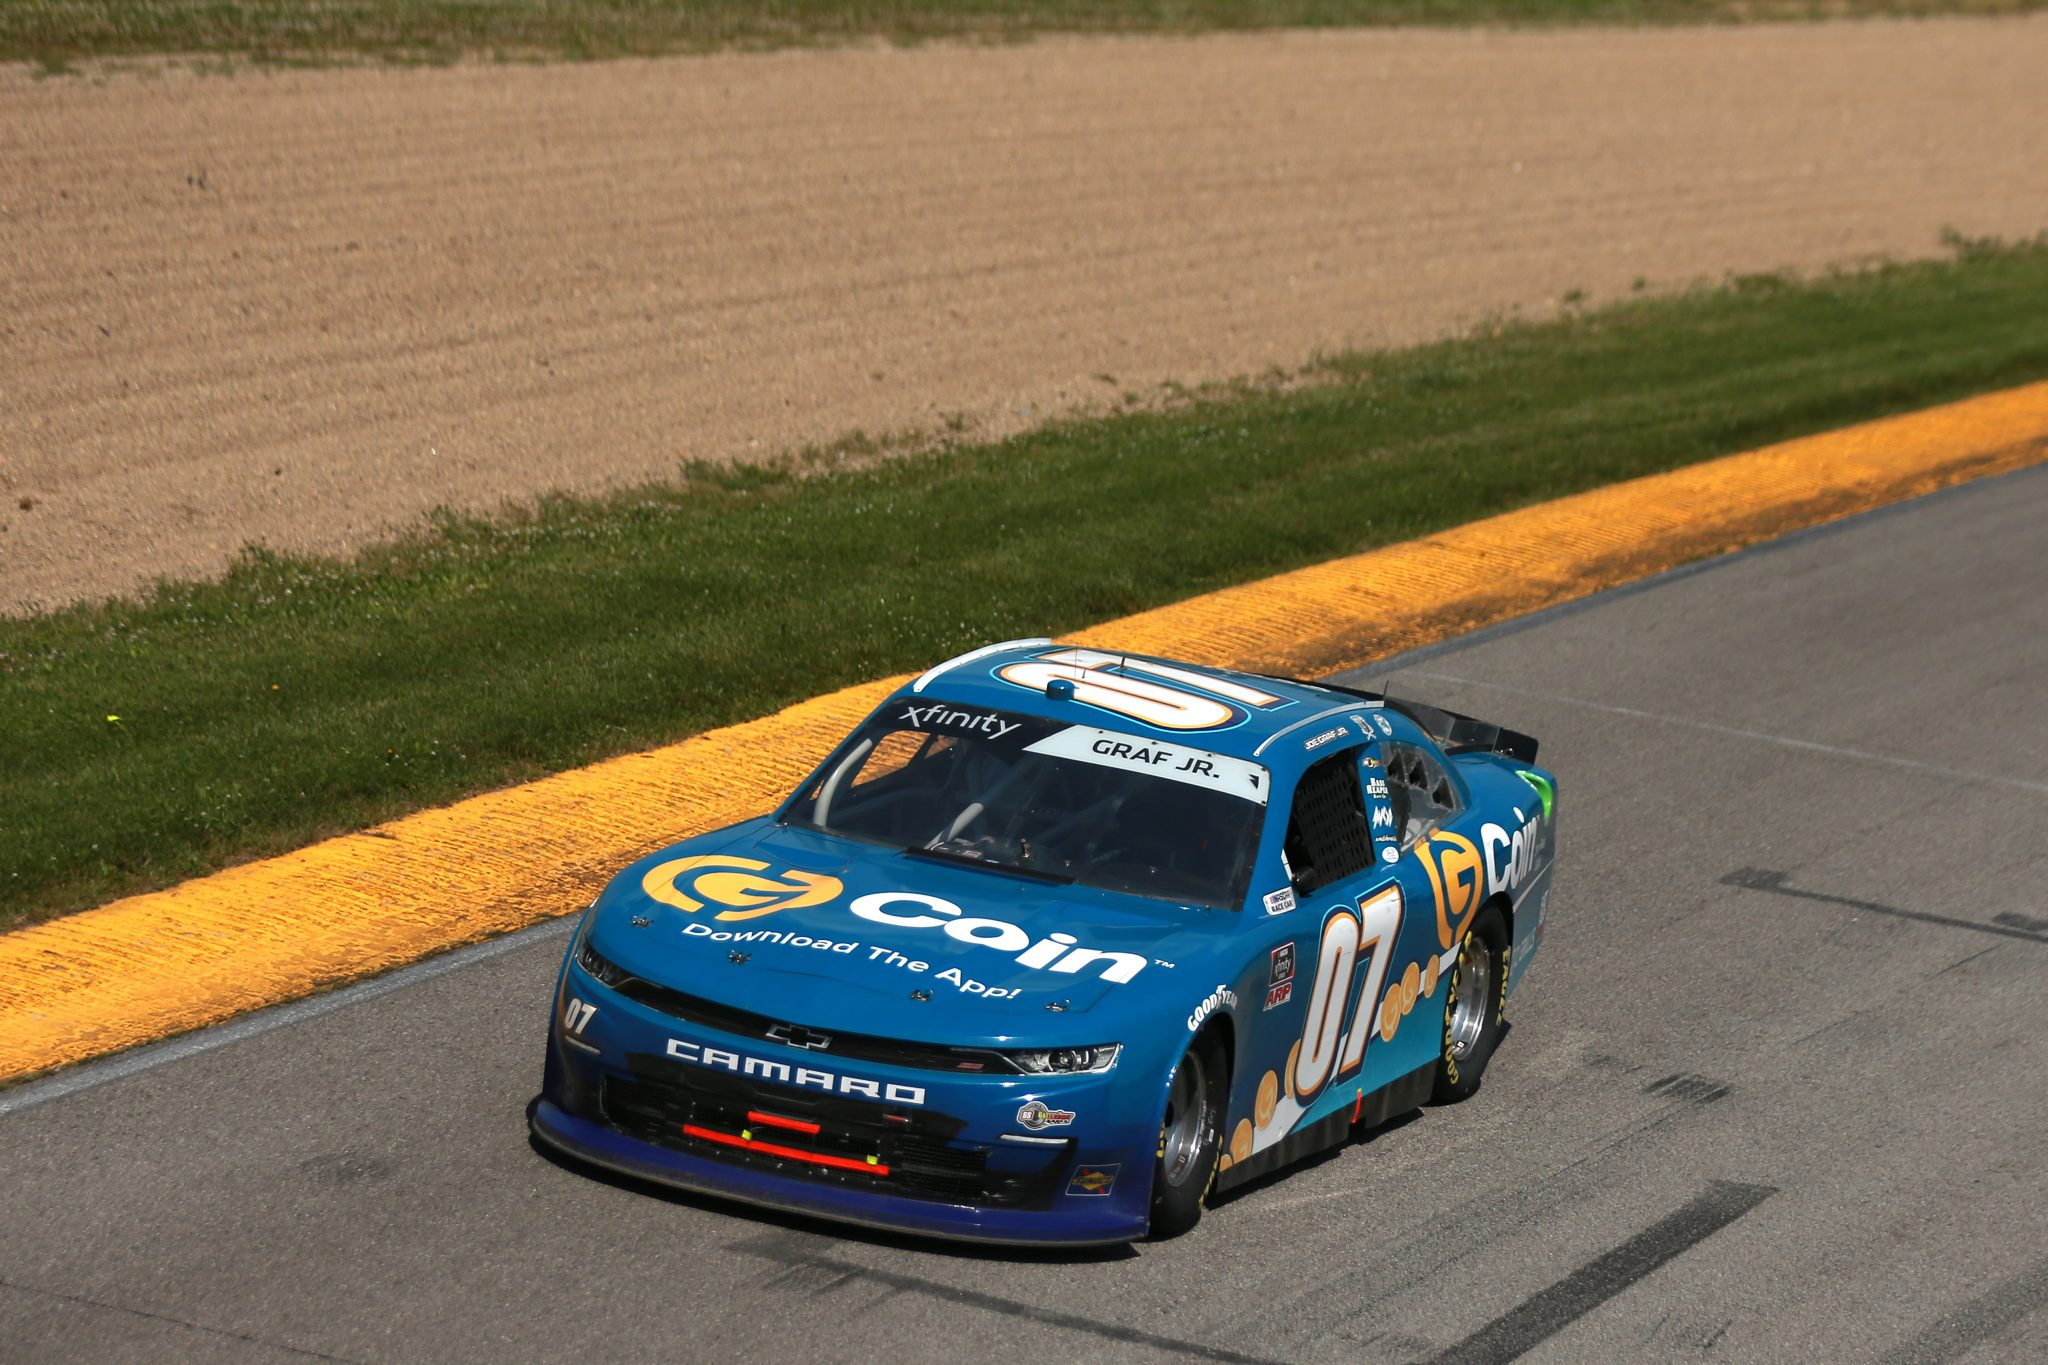 LEXINGTON, OHIO - JUNE 05: Joe Graf Jr., driver of the #07 G-Coin Chevrolet, drives during the NASCAR Xfinity Series B&L Transport 170 at Mid-Ohio Sports Car Course on June 05, 2021 in Lexington, Ohio. (Photo by Sean Gardner/Getty Images) | Getty Images